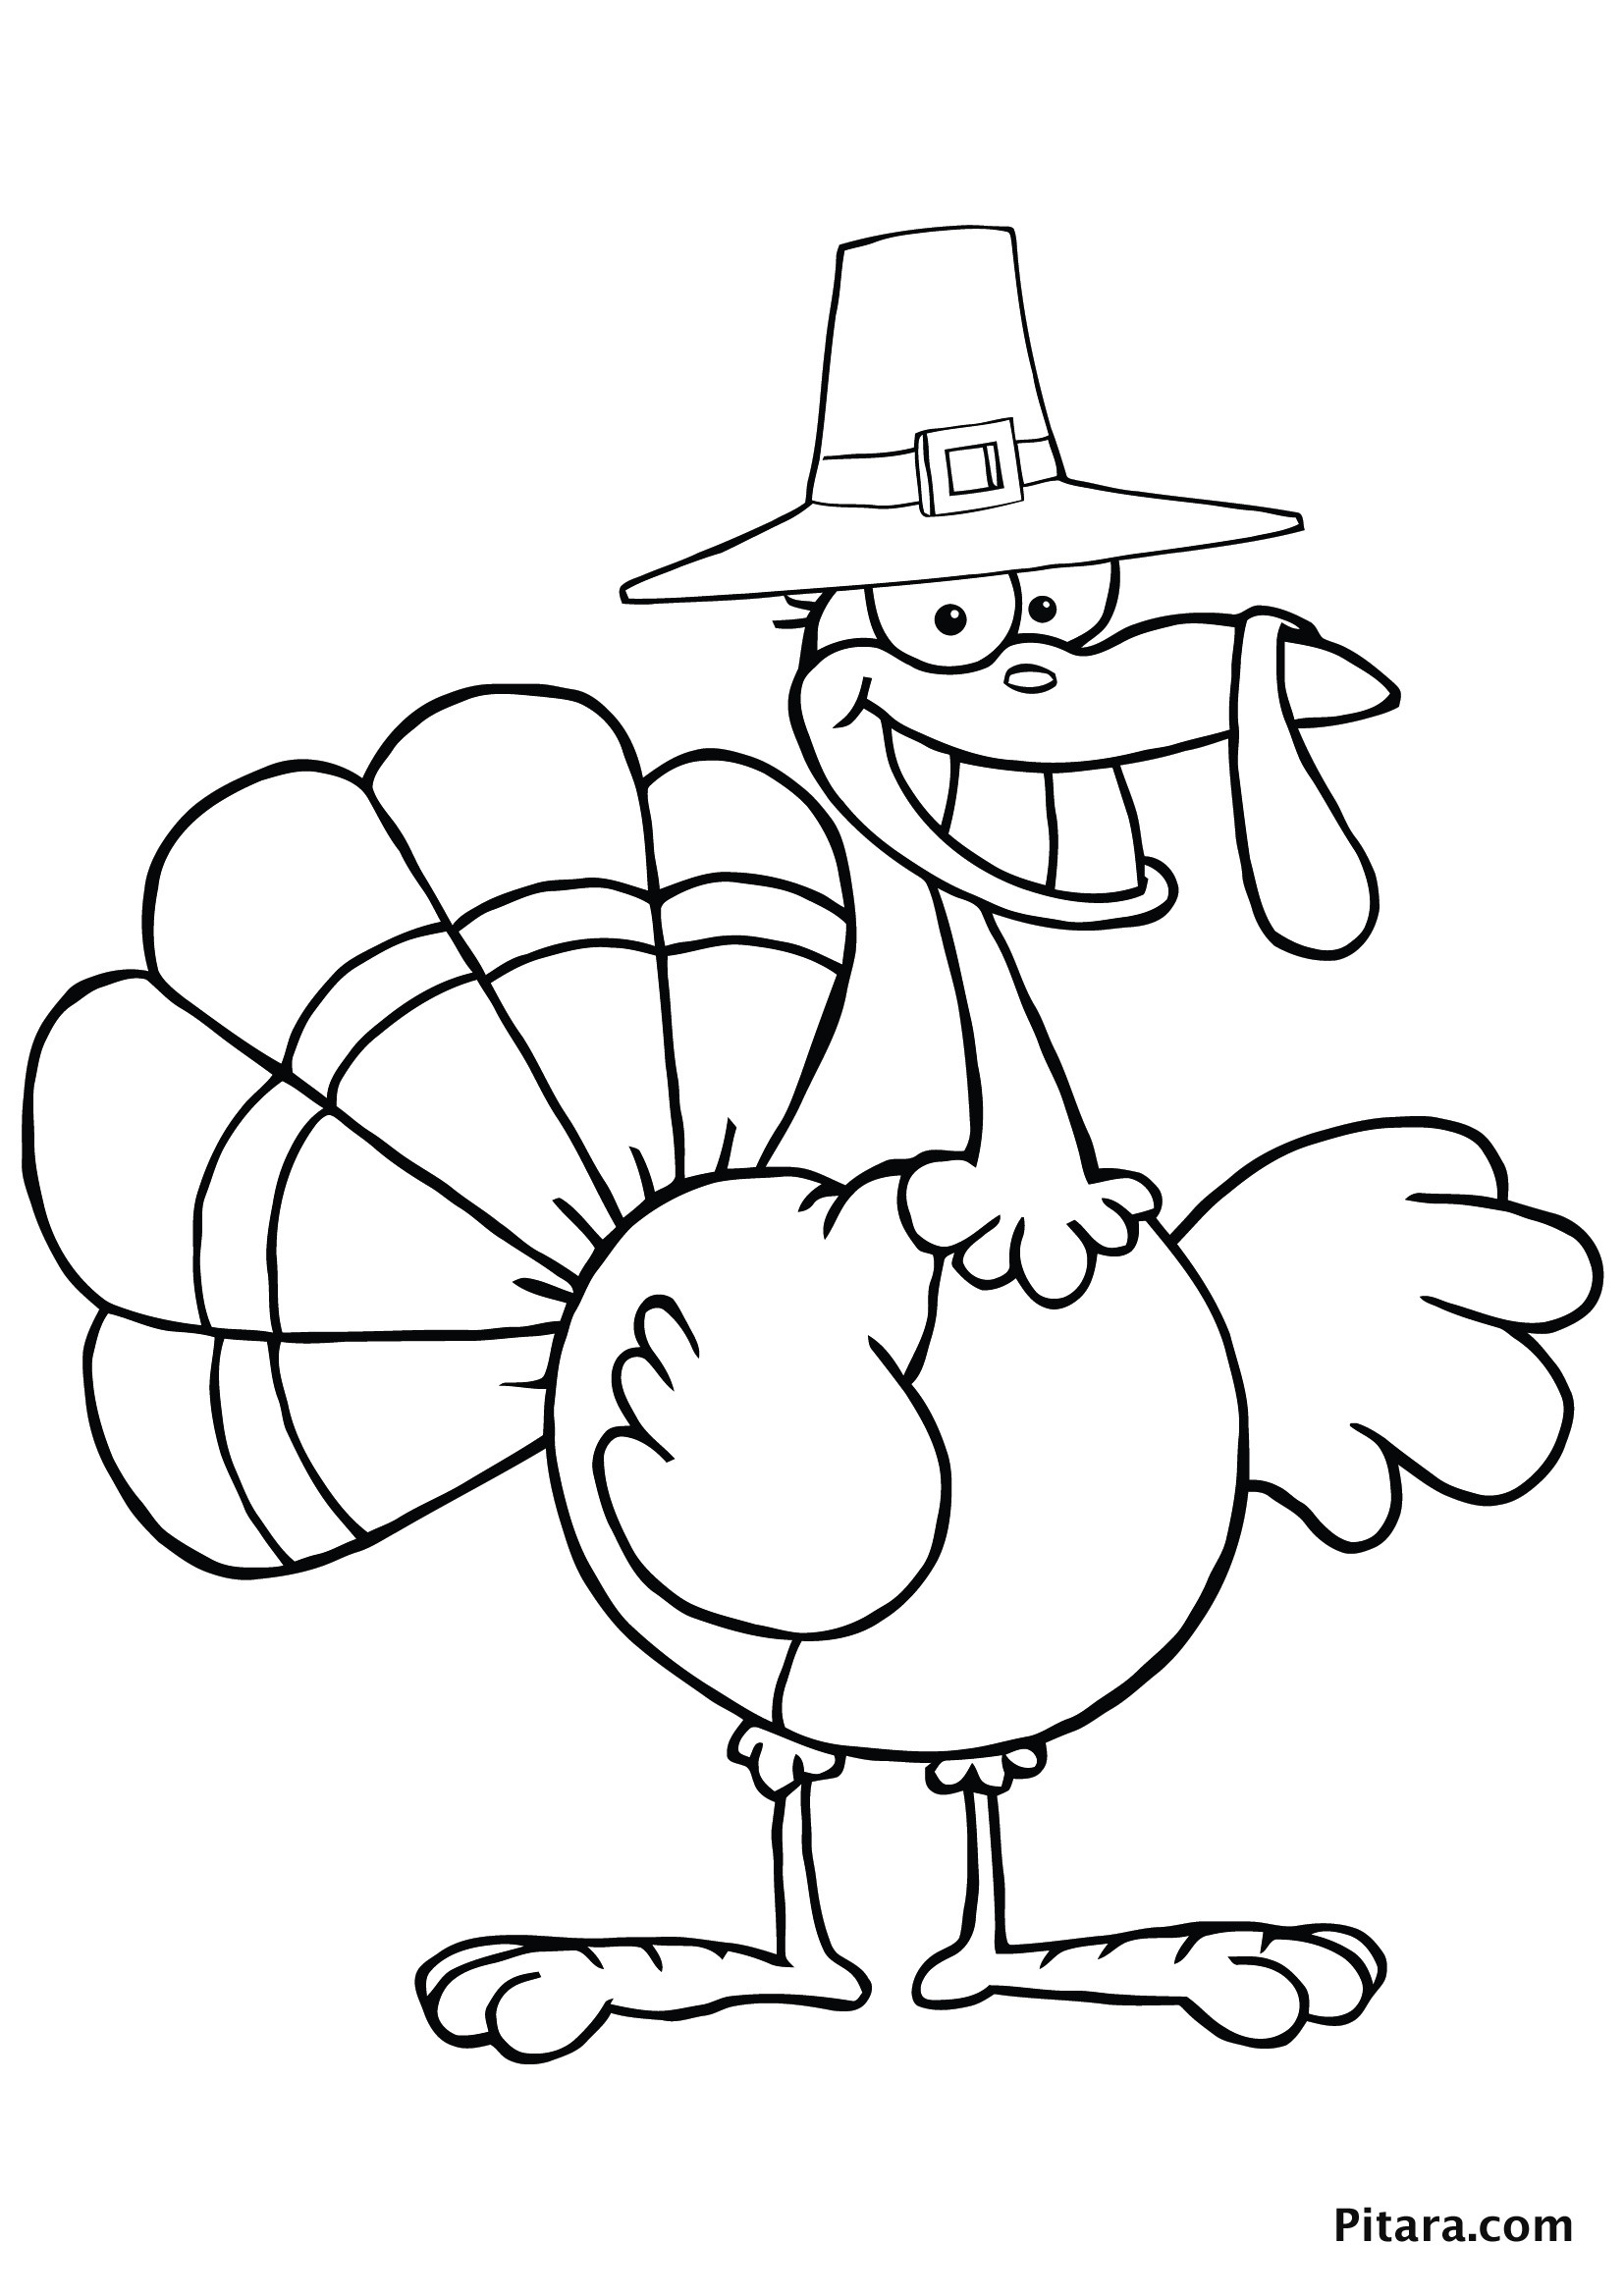 Children Coloring Page  Turkey Coloring Pages for Kids